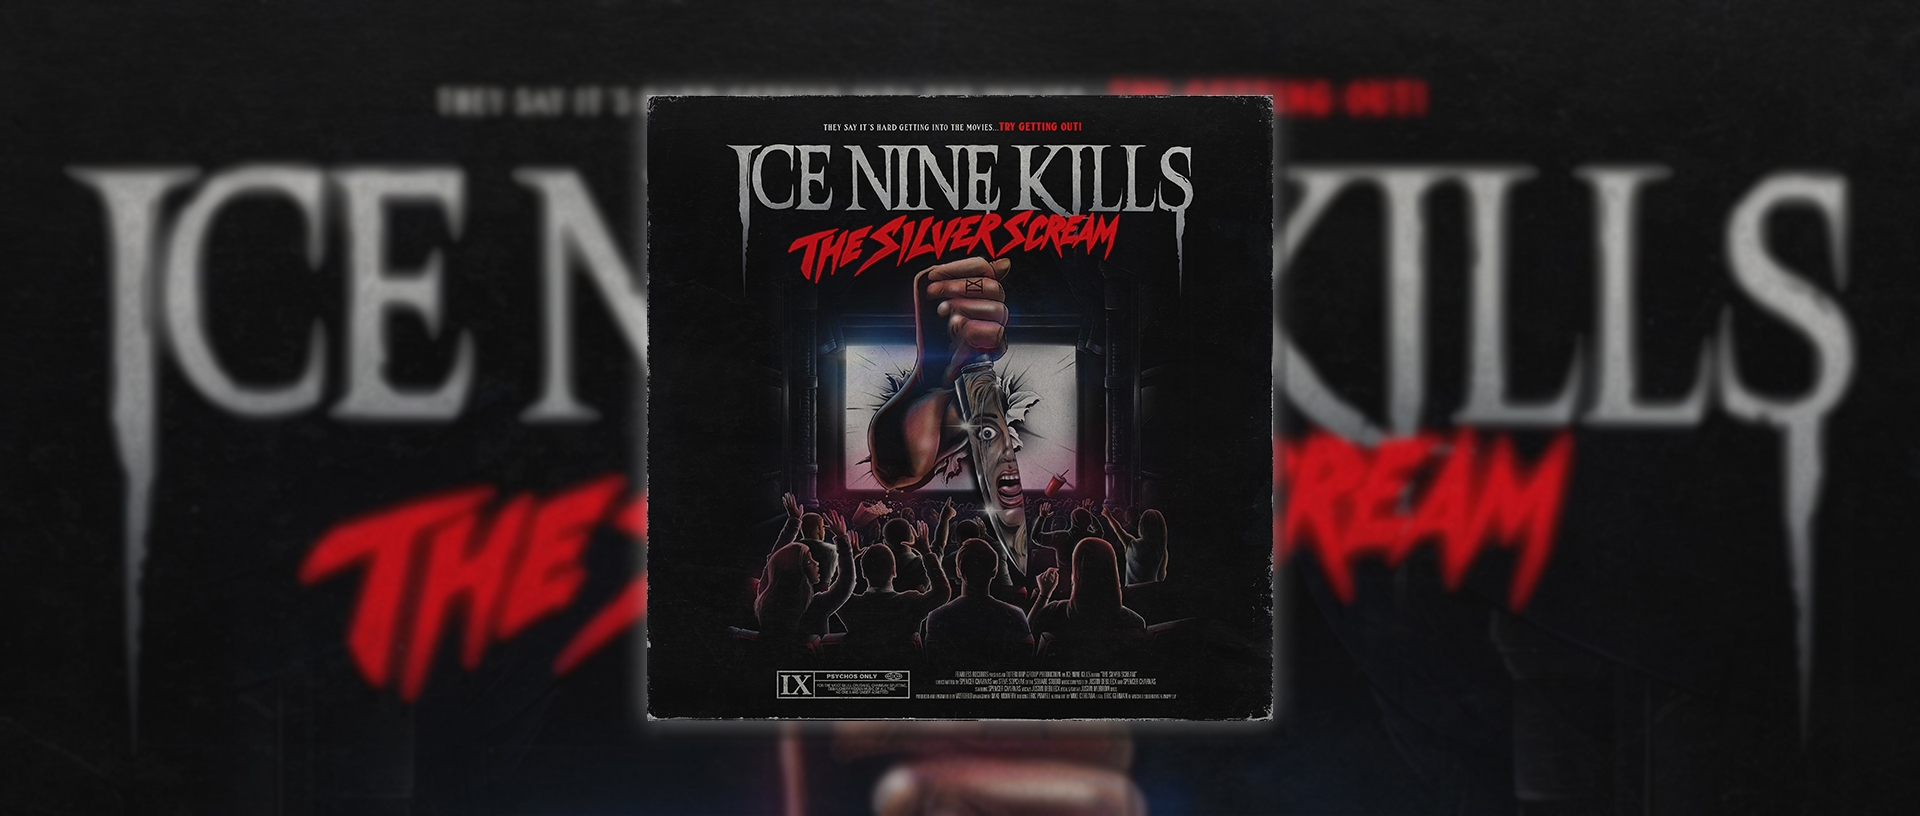 REVIEW: Ice Nine Kills – 'The Silver Scream'